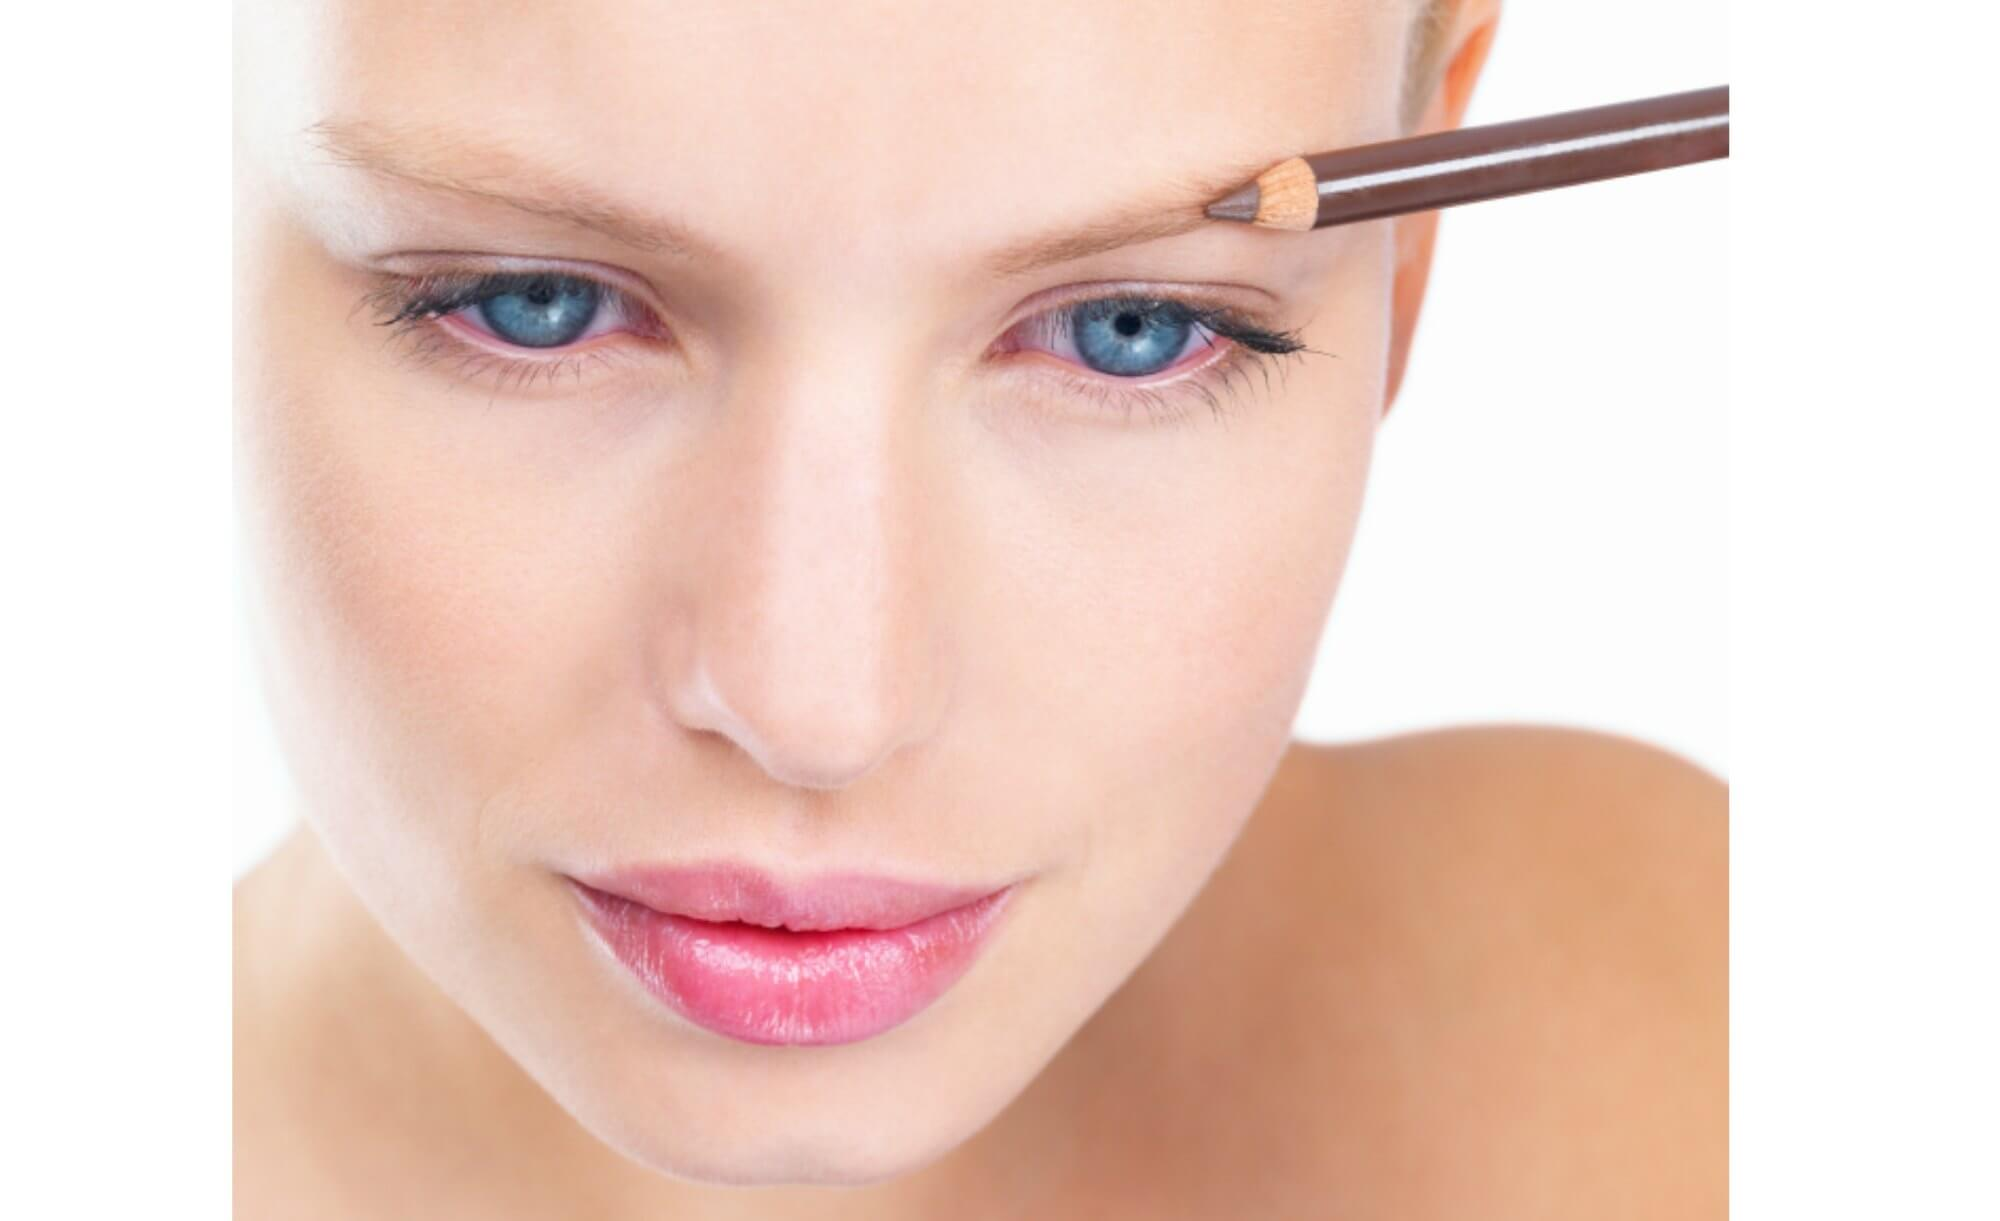 The Best Eyebrow Pencil For Blondes Eyebrow Makeup Tips